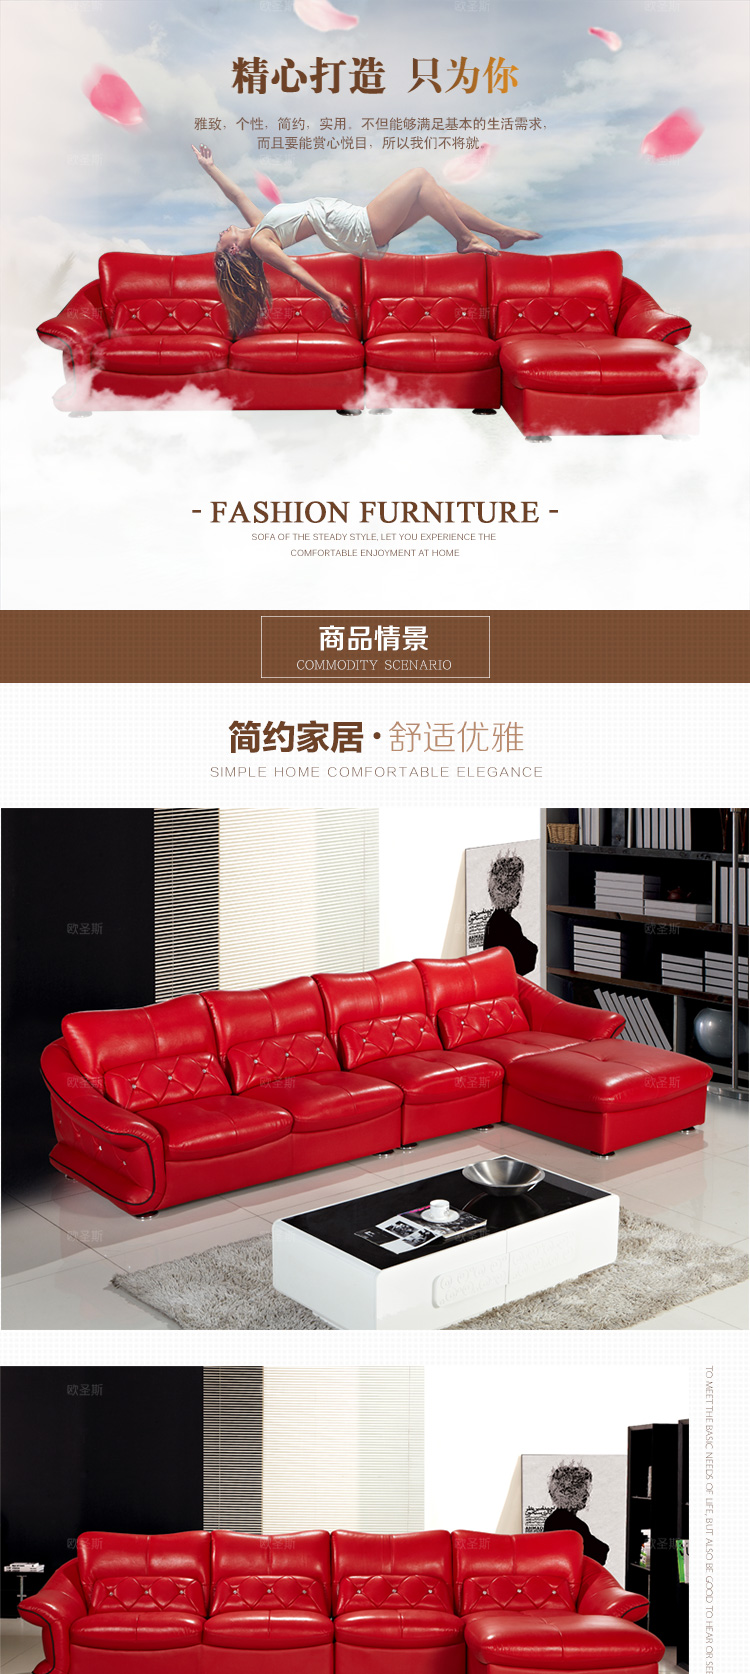 sofa made furniture the usa look past lost upholstered loveseat leather couch hot luxury red from couches